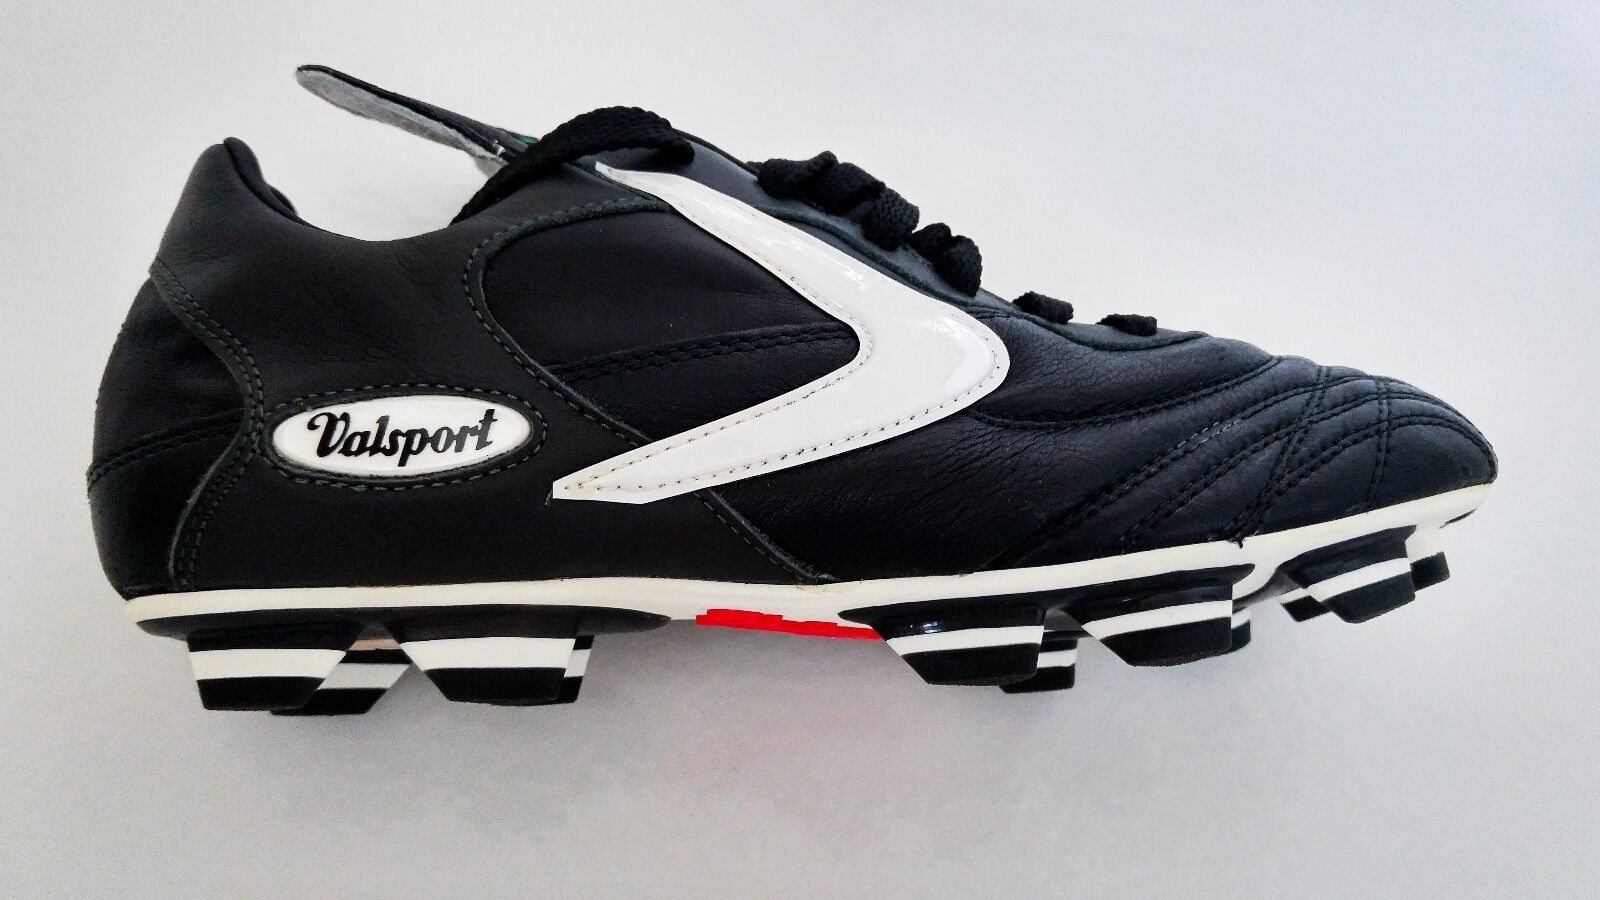 Valsport Genio PU Black Leather Soccer Boots Cleats US 8 EU 41 UK 41